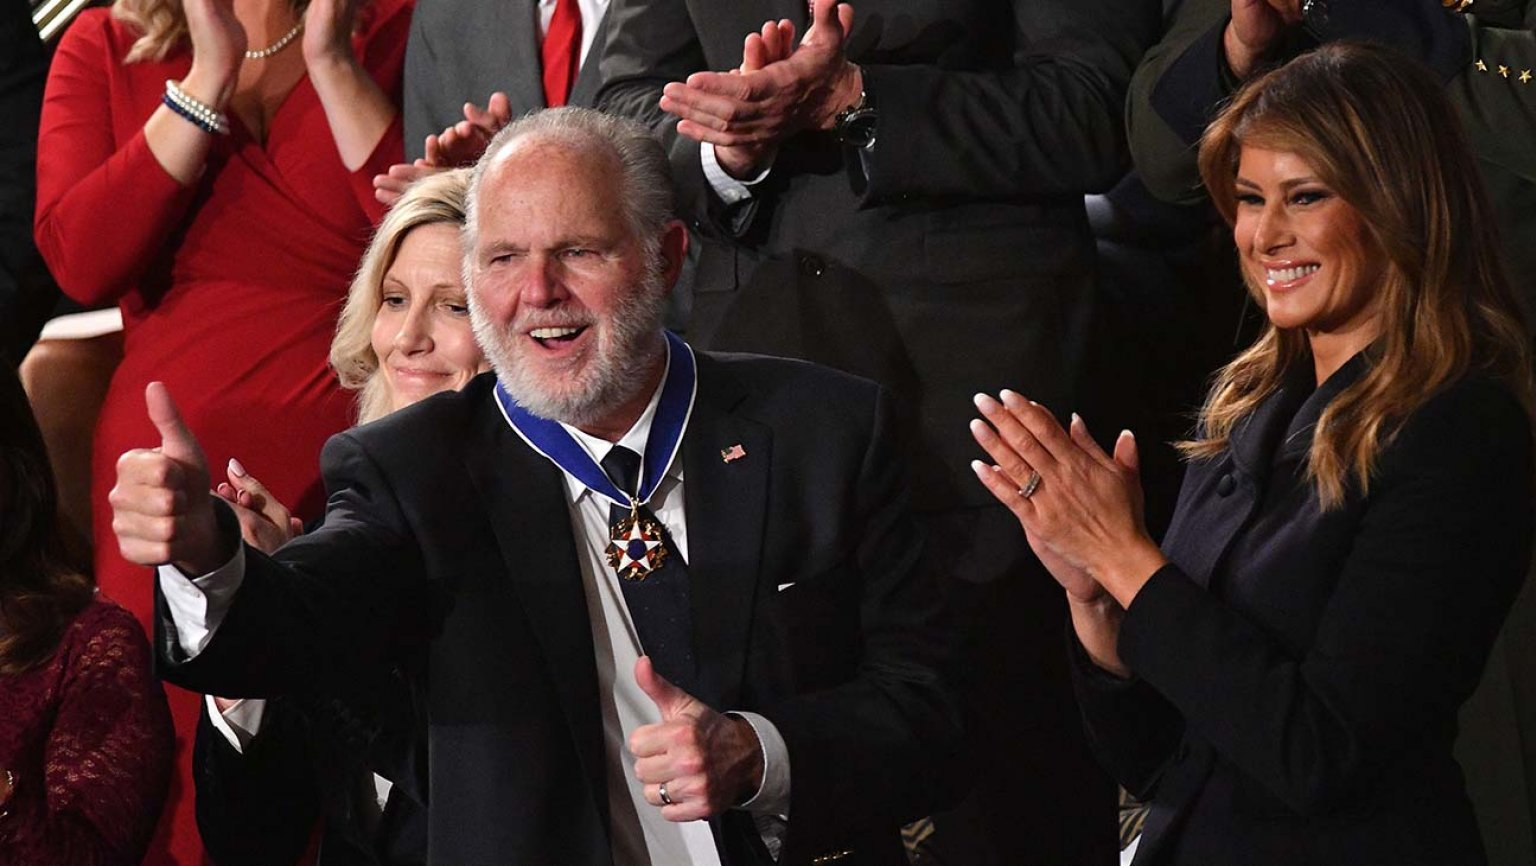 Rush Limbaugh receives Presidential Medal of Freedom